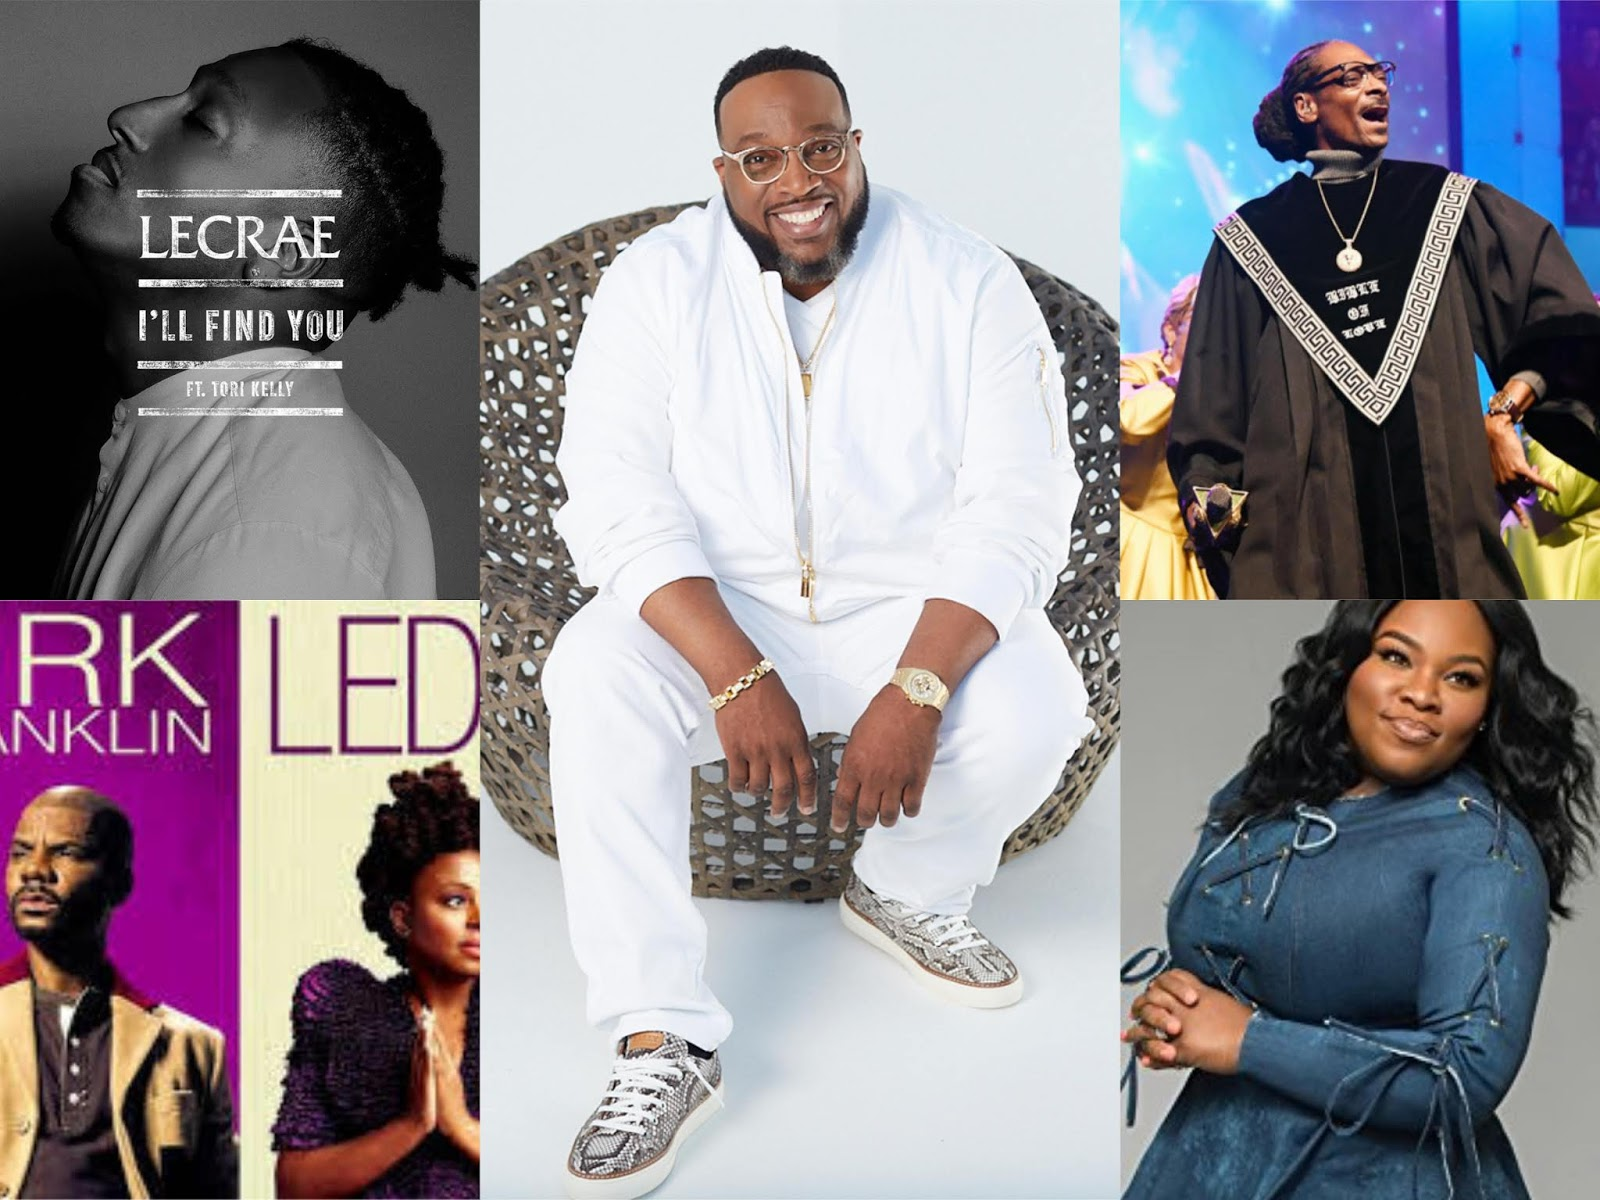 Lecrae. BET AWards 2018. Marvin Sapp. Ledisi and Kirk Franklin. Tasha Cobbs